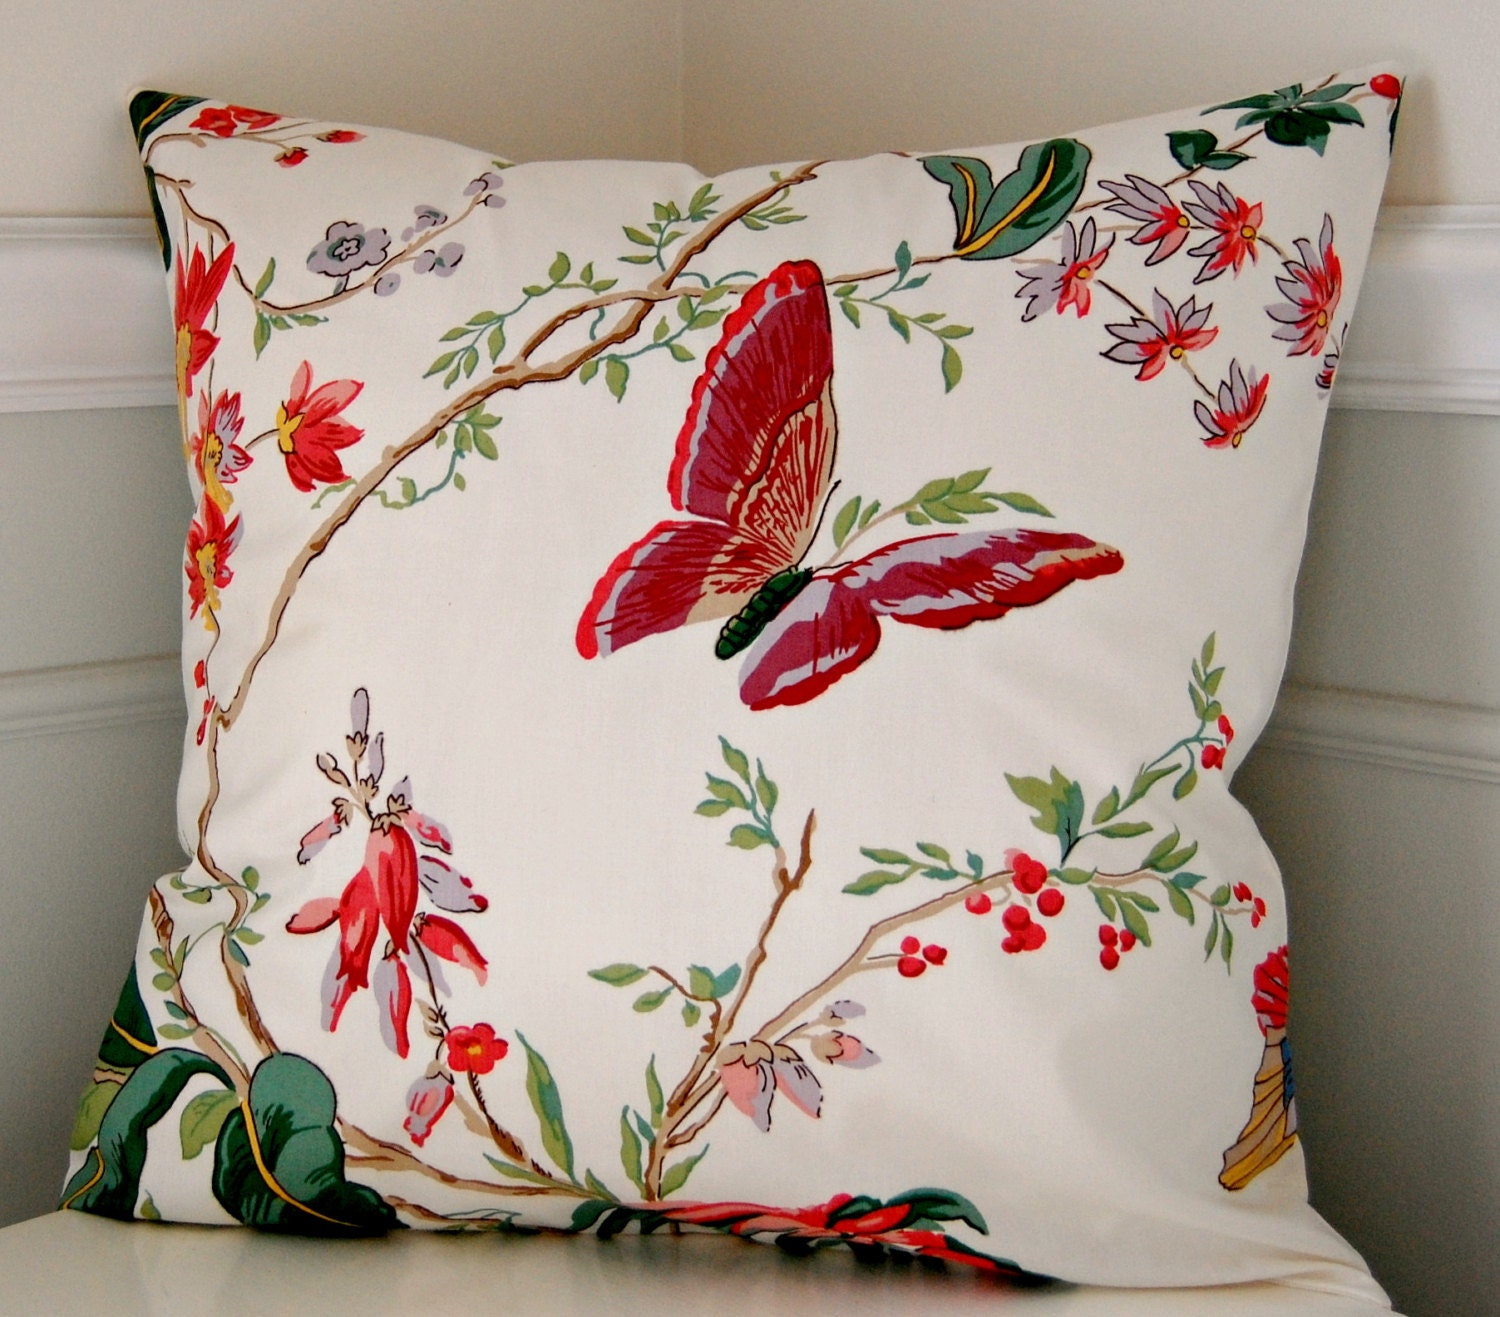 Decorative Floral Pillow Covers : Floral Pillow Cover Floral Decorative Throw Pillow Coral